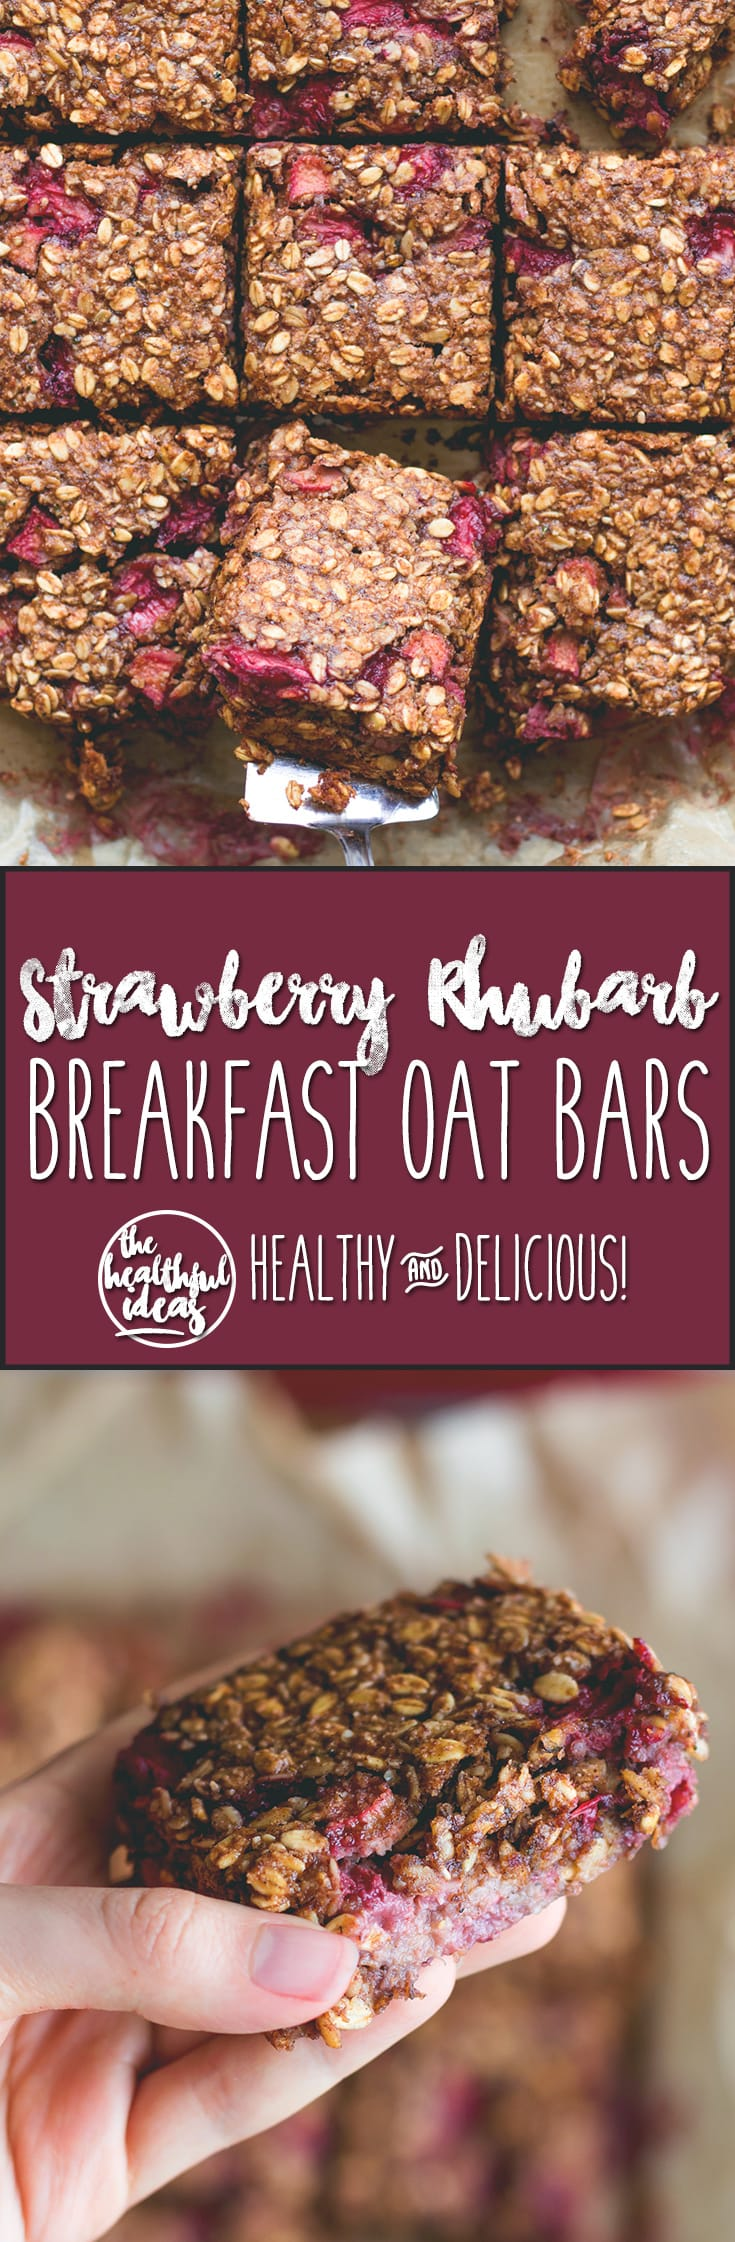 Strawberry Rhubarb Breakfast Oat Bars - delicious breakfast bars that taste totally like a dessert. You'll love this recipe. The rhubarb strawberry combination with maple syrup is divine! It tastes like marzipan! | thehealthfulideas.com